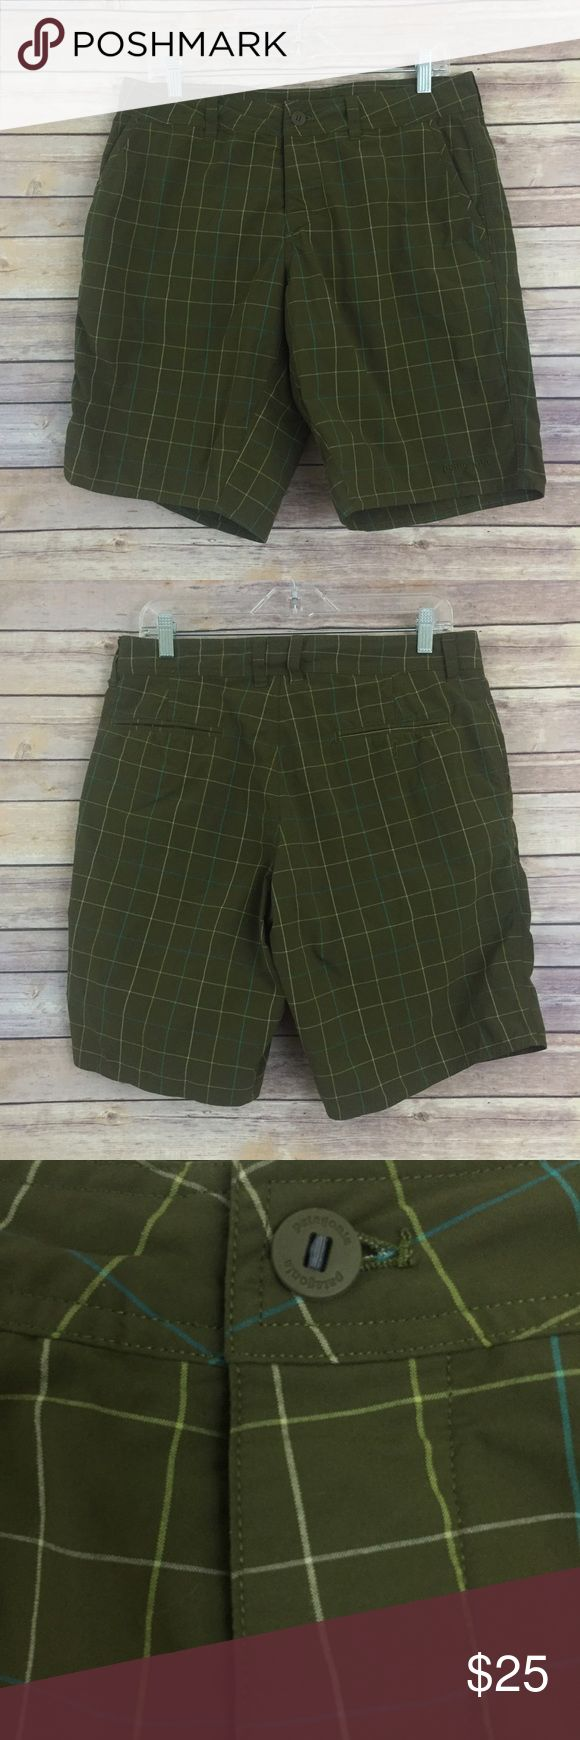 Men's Patagonia outdoor shorts size 33, grn (M12) These men's Patagonia outdoor shorts are a nice green plaid color and are a size 33, in excellent pre owned condition. Patagonia Shorts